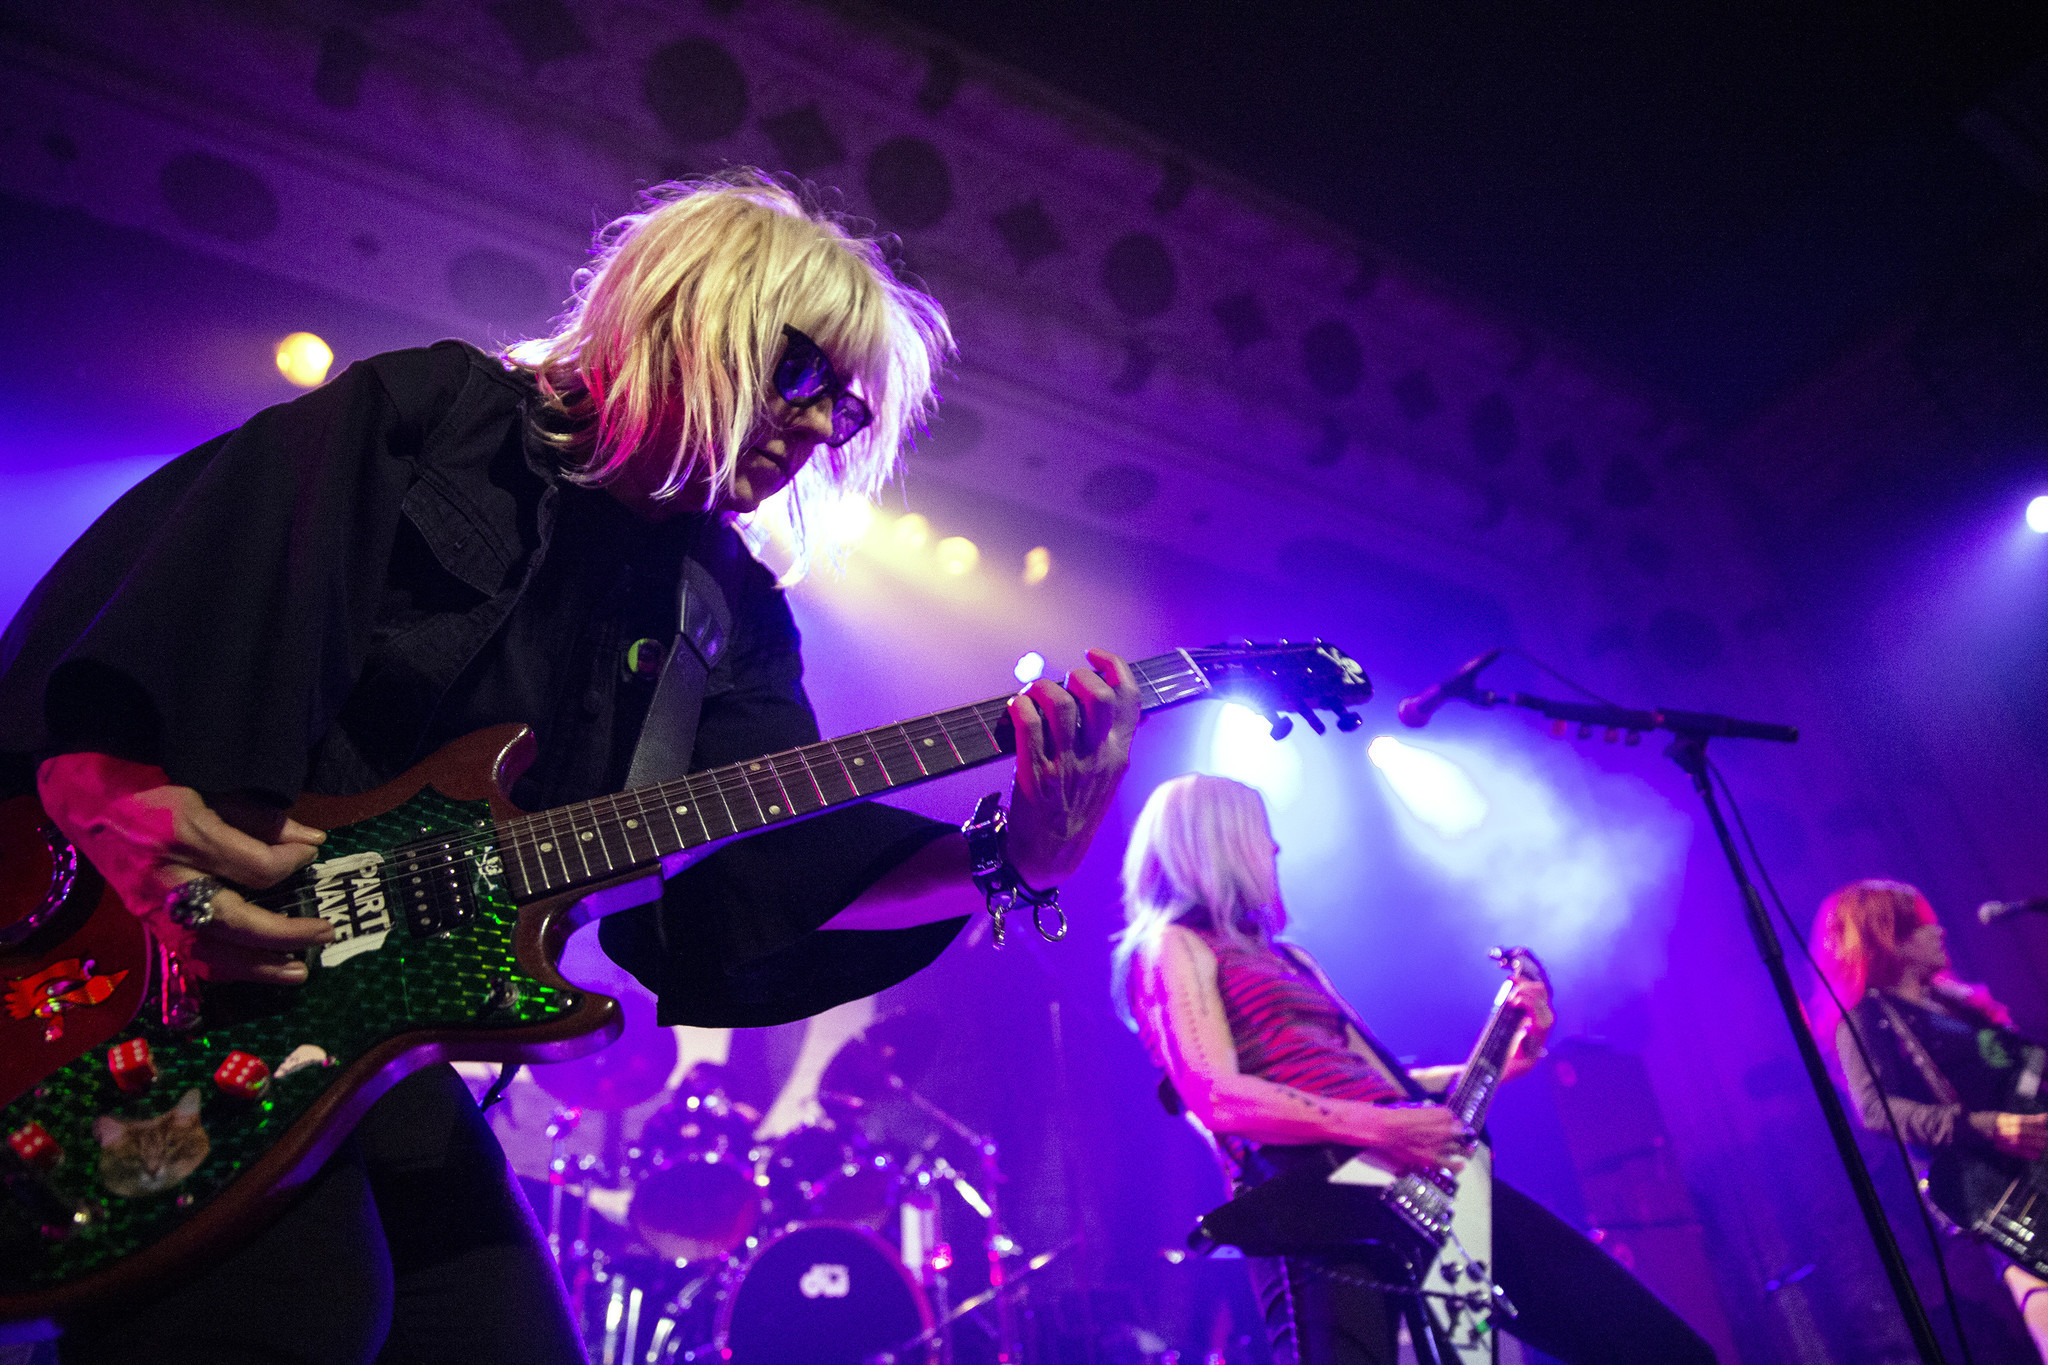 L7's notorious brand of rage and mischievous cheek on full display during Metro show